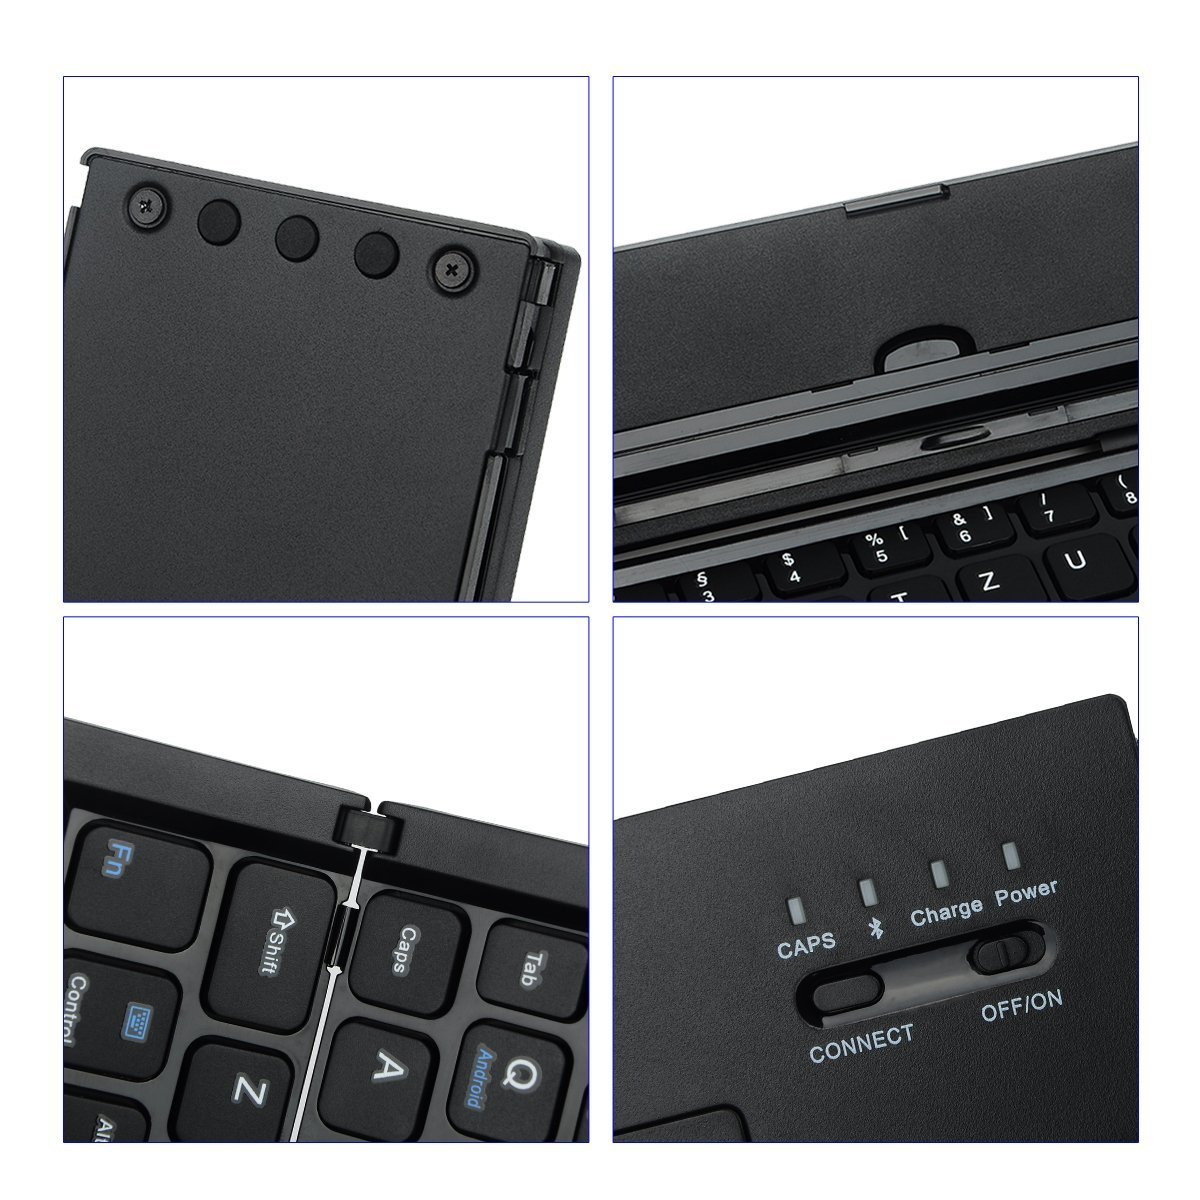 LEANINGTECH Portable Foldable Bluetooth Keyboard Aluminum Metal Collapsible Keypad with Kickstand Holder Phone Holder for iPhone, iPad, Samsung, Android, Windows Device-Black by LEANINGTECH (Image #4)